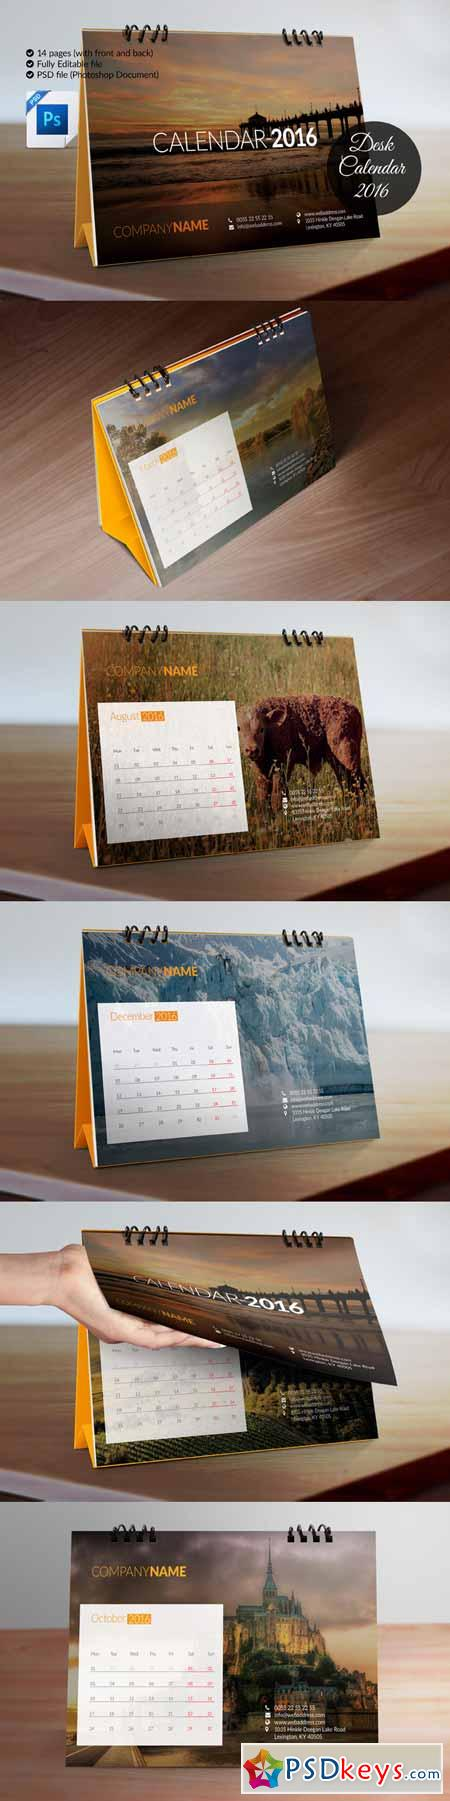 Desk Calendar (Template) for 2016 478531